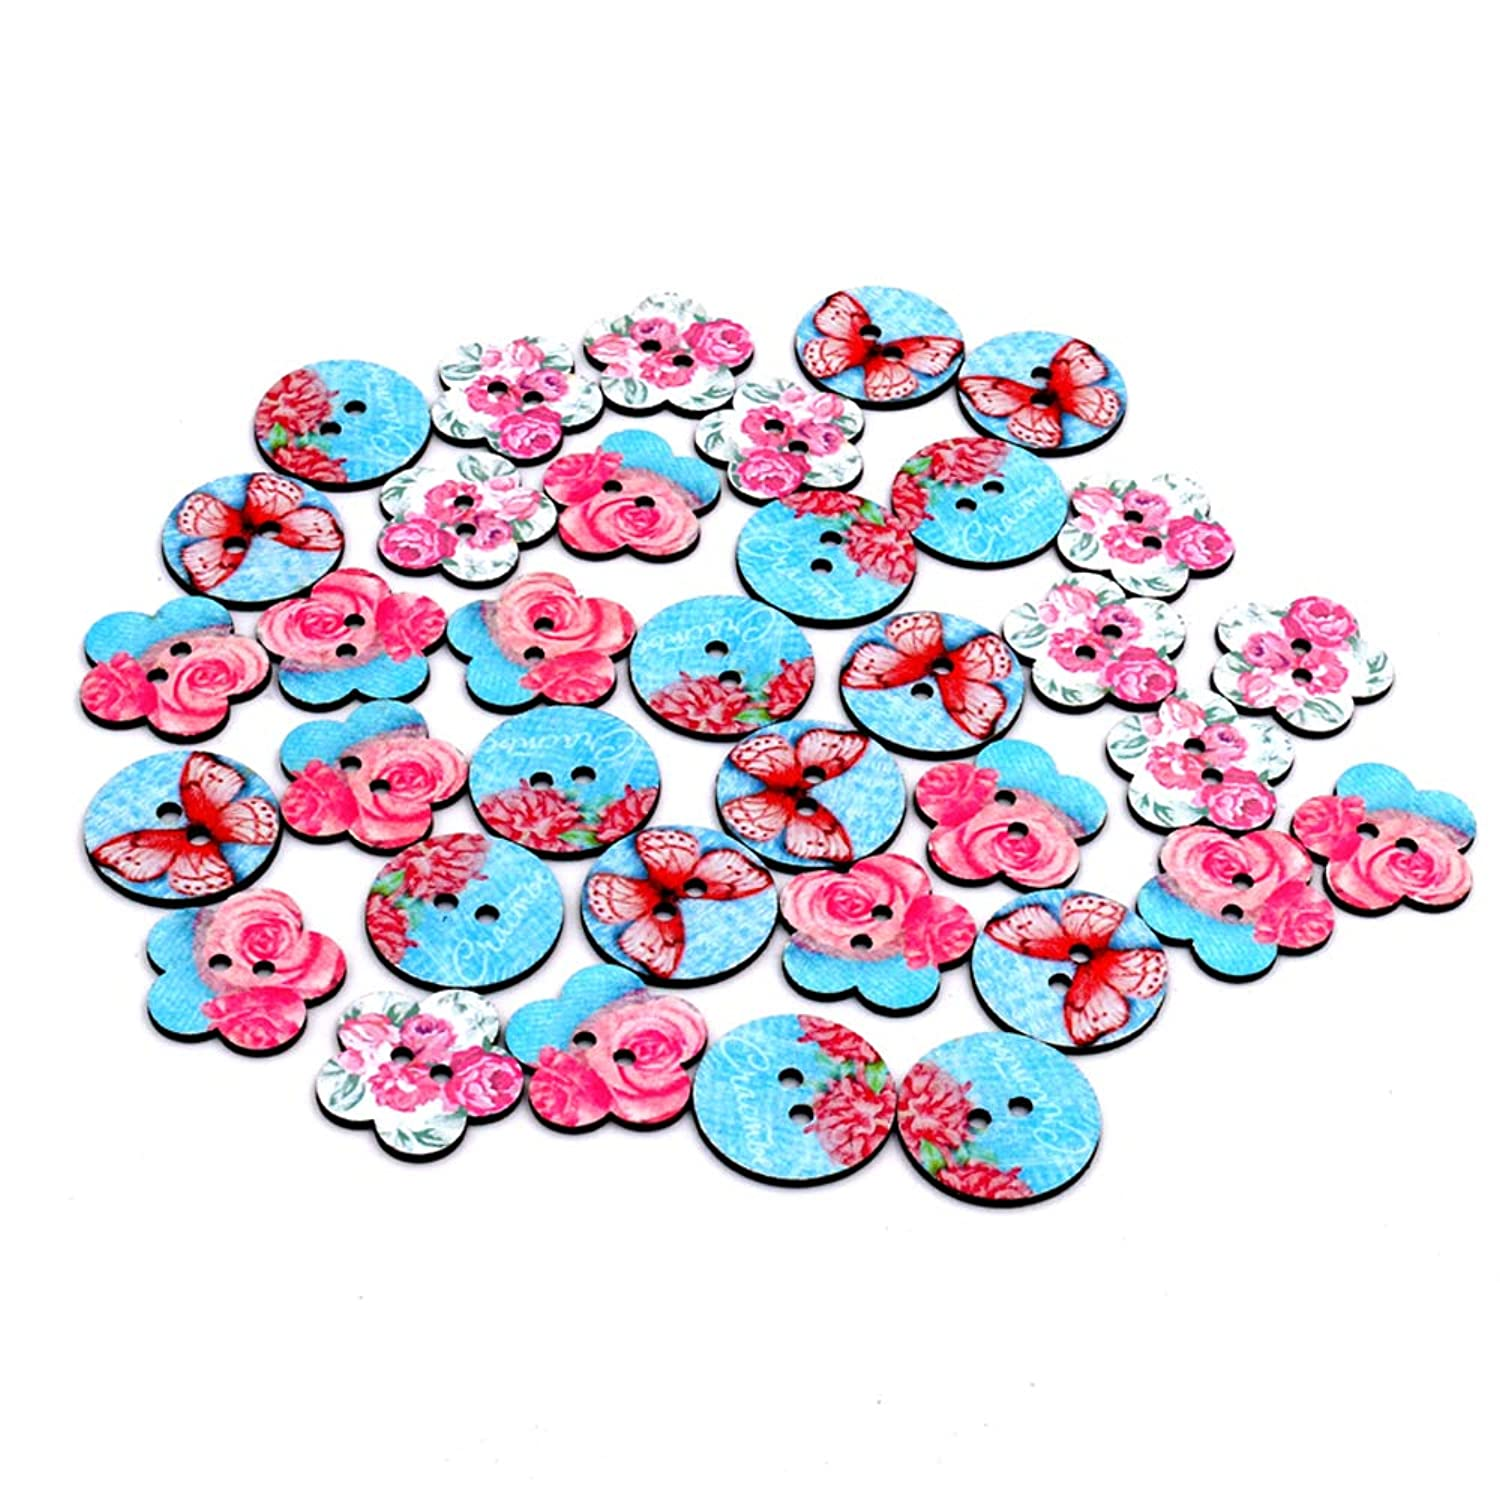 100pcs Mixed Wooden Buttons Pink Blue Butterfly Flower Shape Craft Round Assorted Buttons for Sewing DIY Crafts 25mm (Blue)